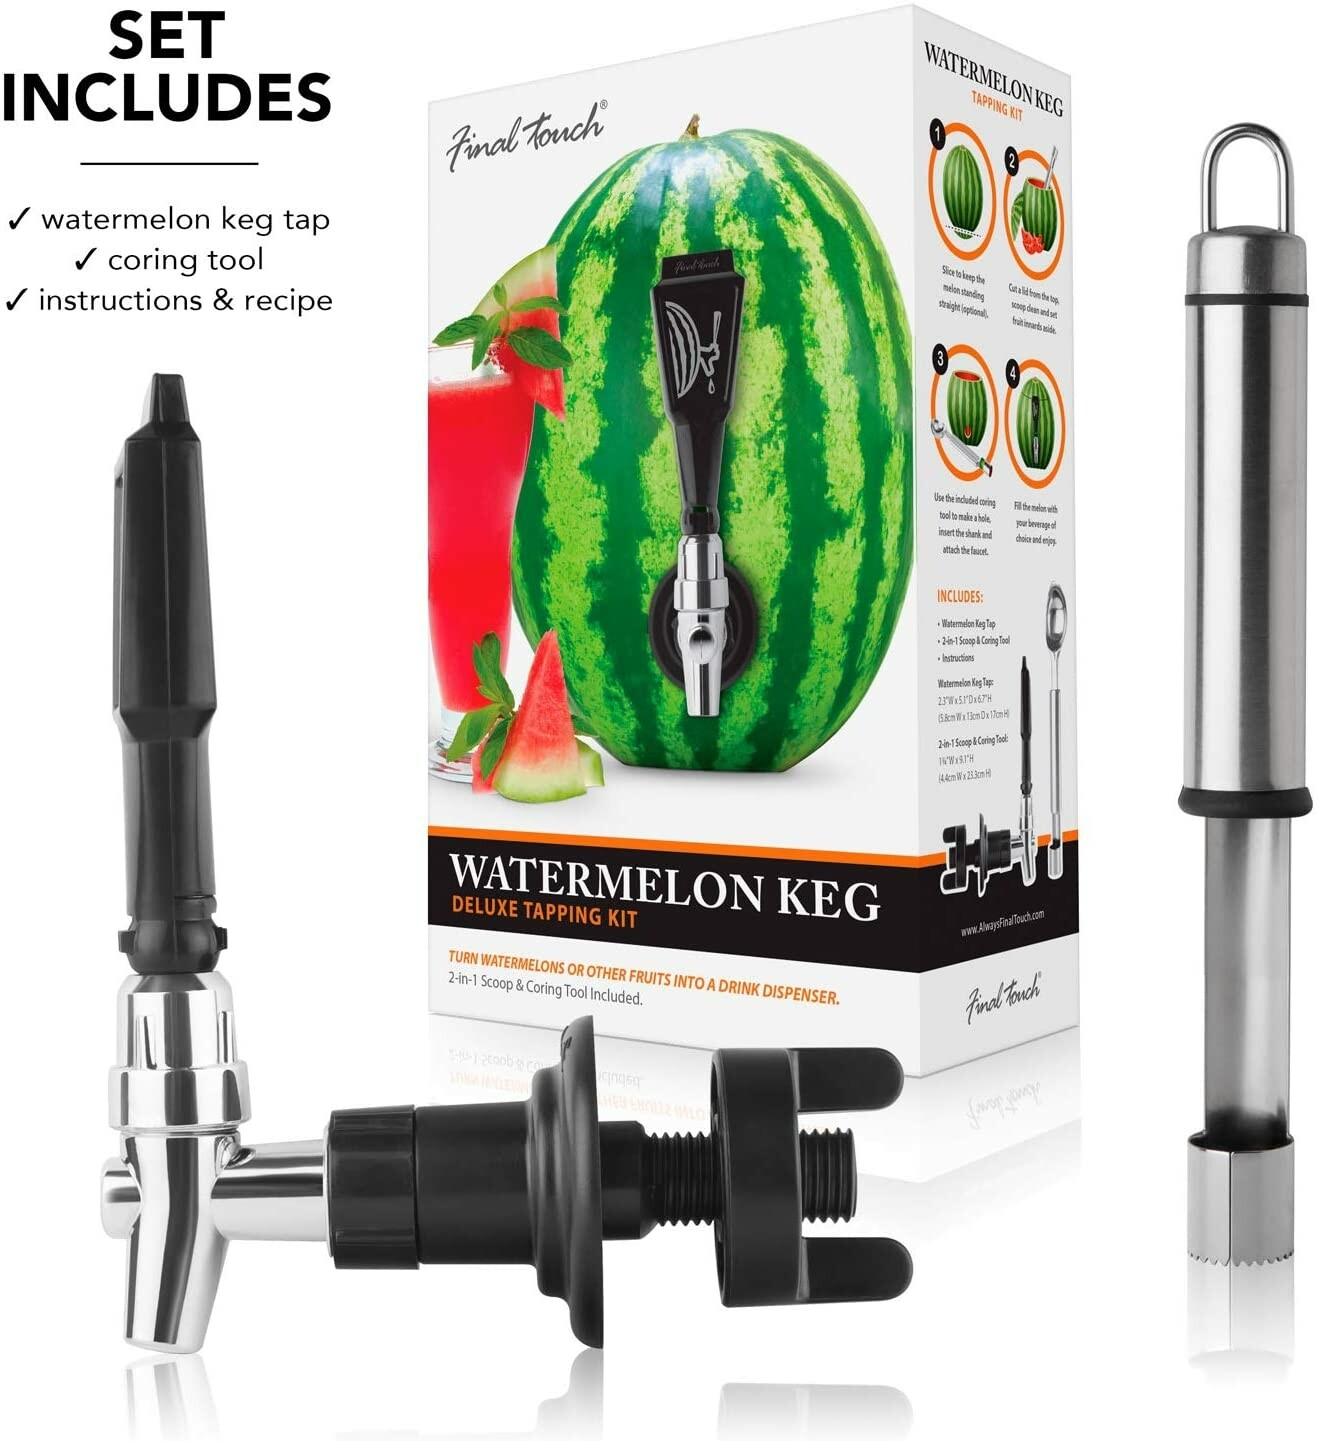 Final Touch | Watermelon Keg Deluxe Tapping Kit